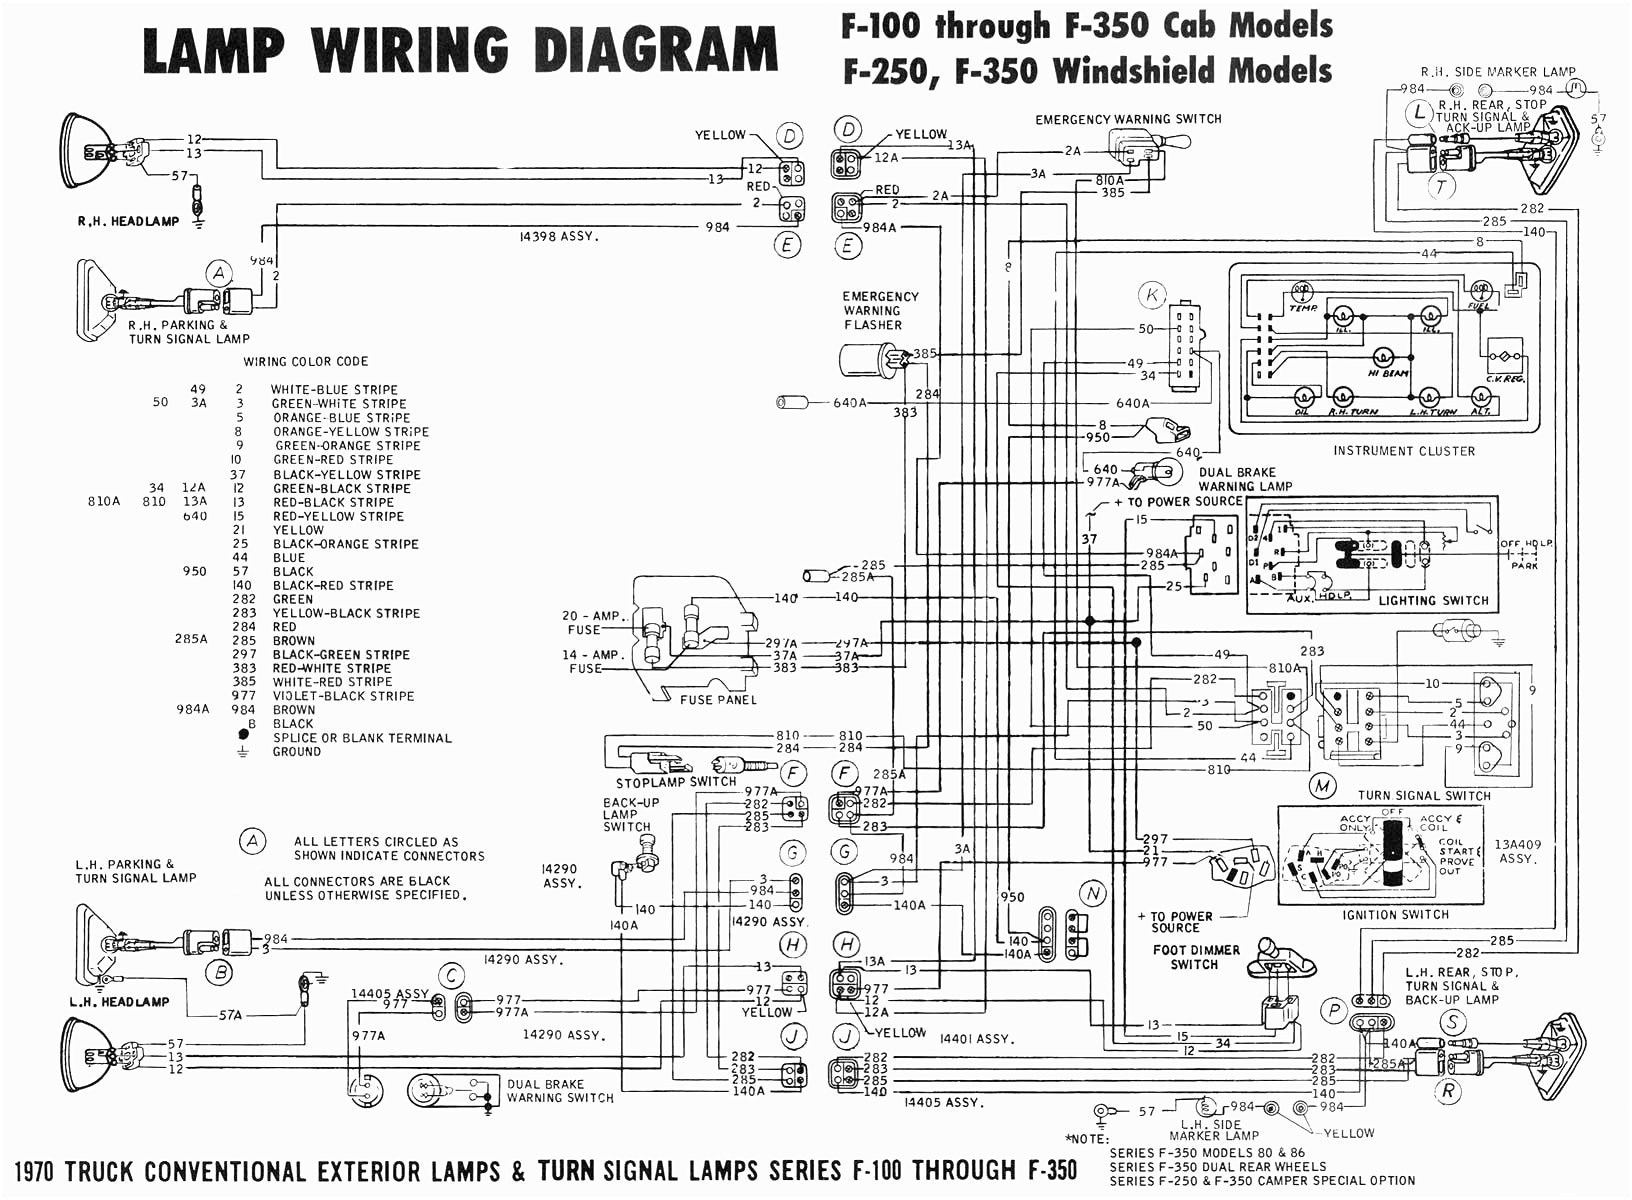 mtd ignition switch wiring diagram wiring diagram for mtd ignition switch fresh wiring diagram amplifier archives joescablecar fresh wiring 14q jpg